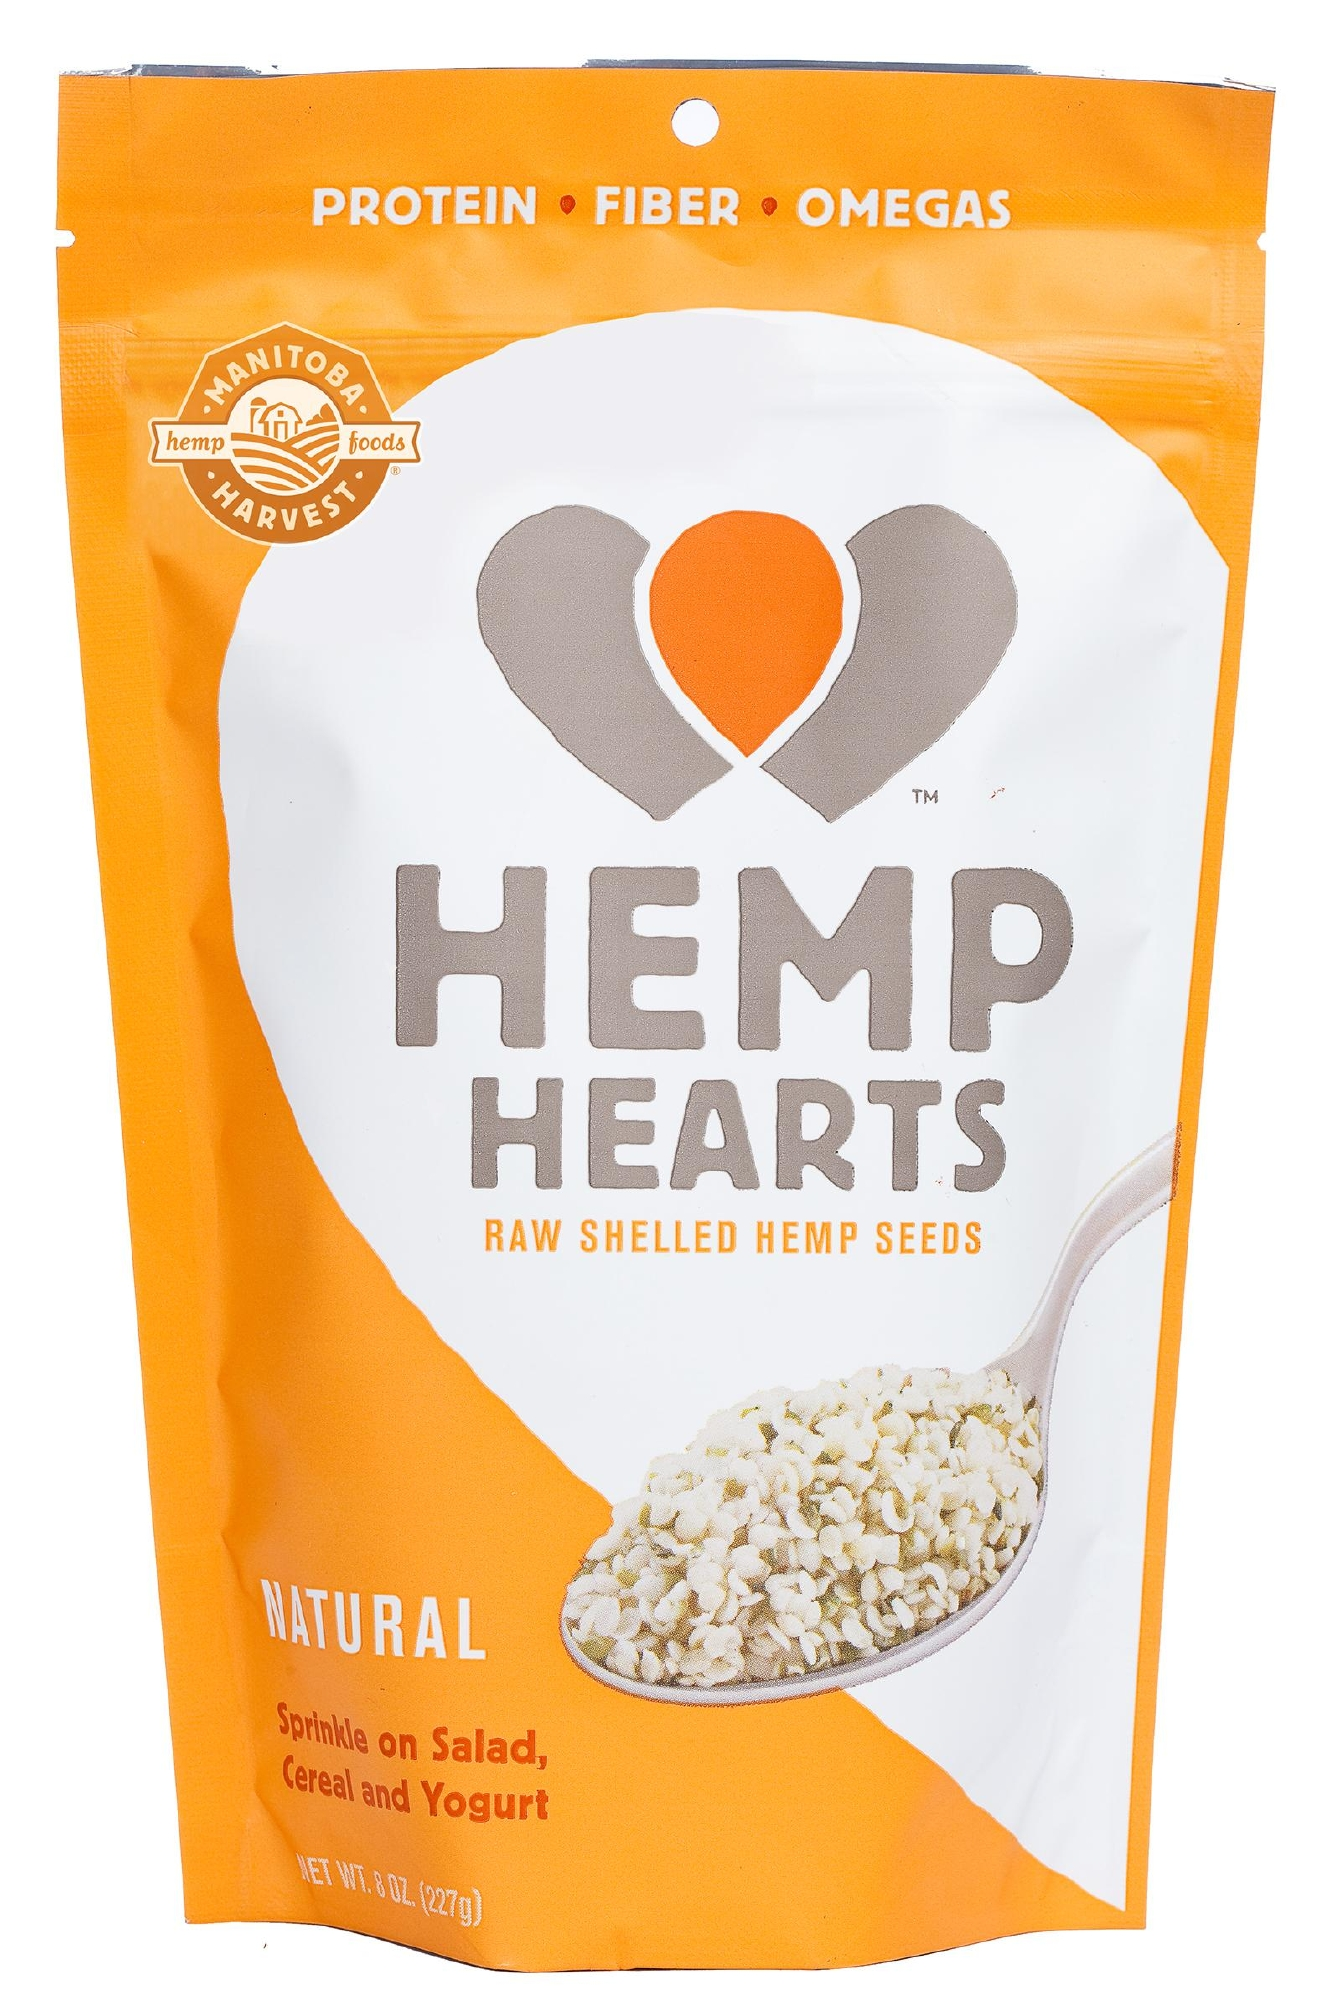 Manitoba Harvest Hemp Hearts: Another go-to because it can boost to better the nutrition of any nutrition stop with these seeds that pack plant protein, omegas, and fiber. Because they don't have any extra carbs they also pair well with other carb choices whether that's fruit or cereal or butternut squash soup, potatoes or yogurt. //Ashley Koff, RD and founder of Ashleykoffapproved.com// (Manitoba Harvest)